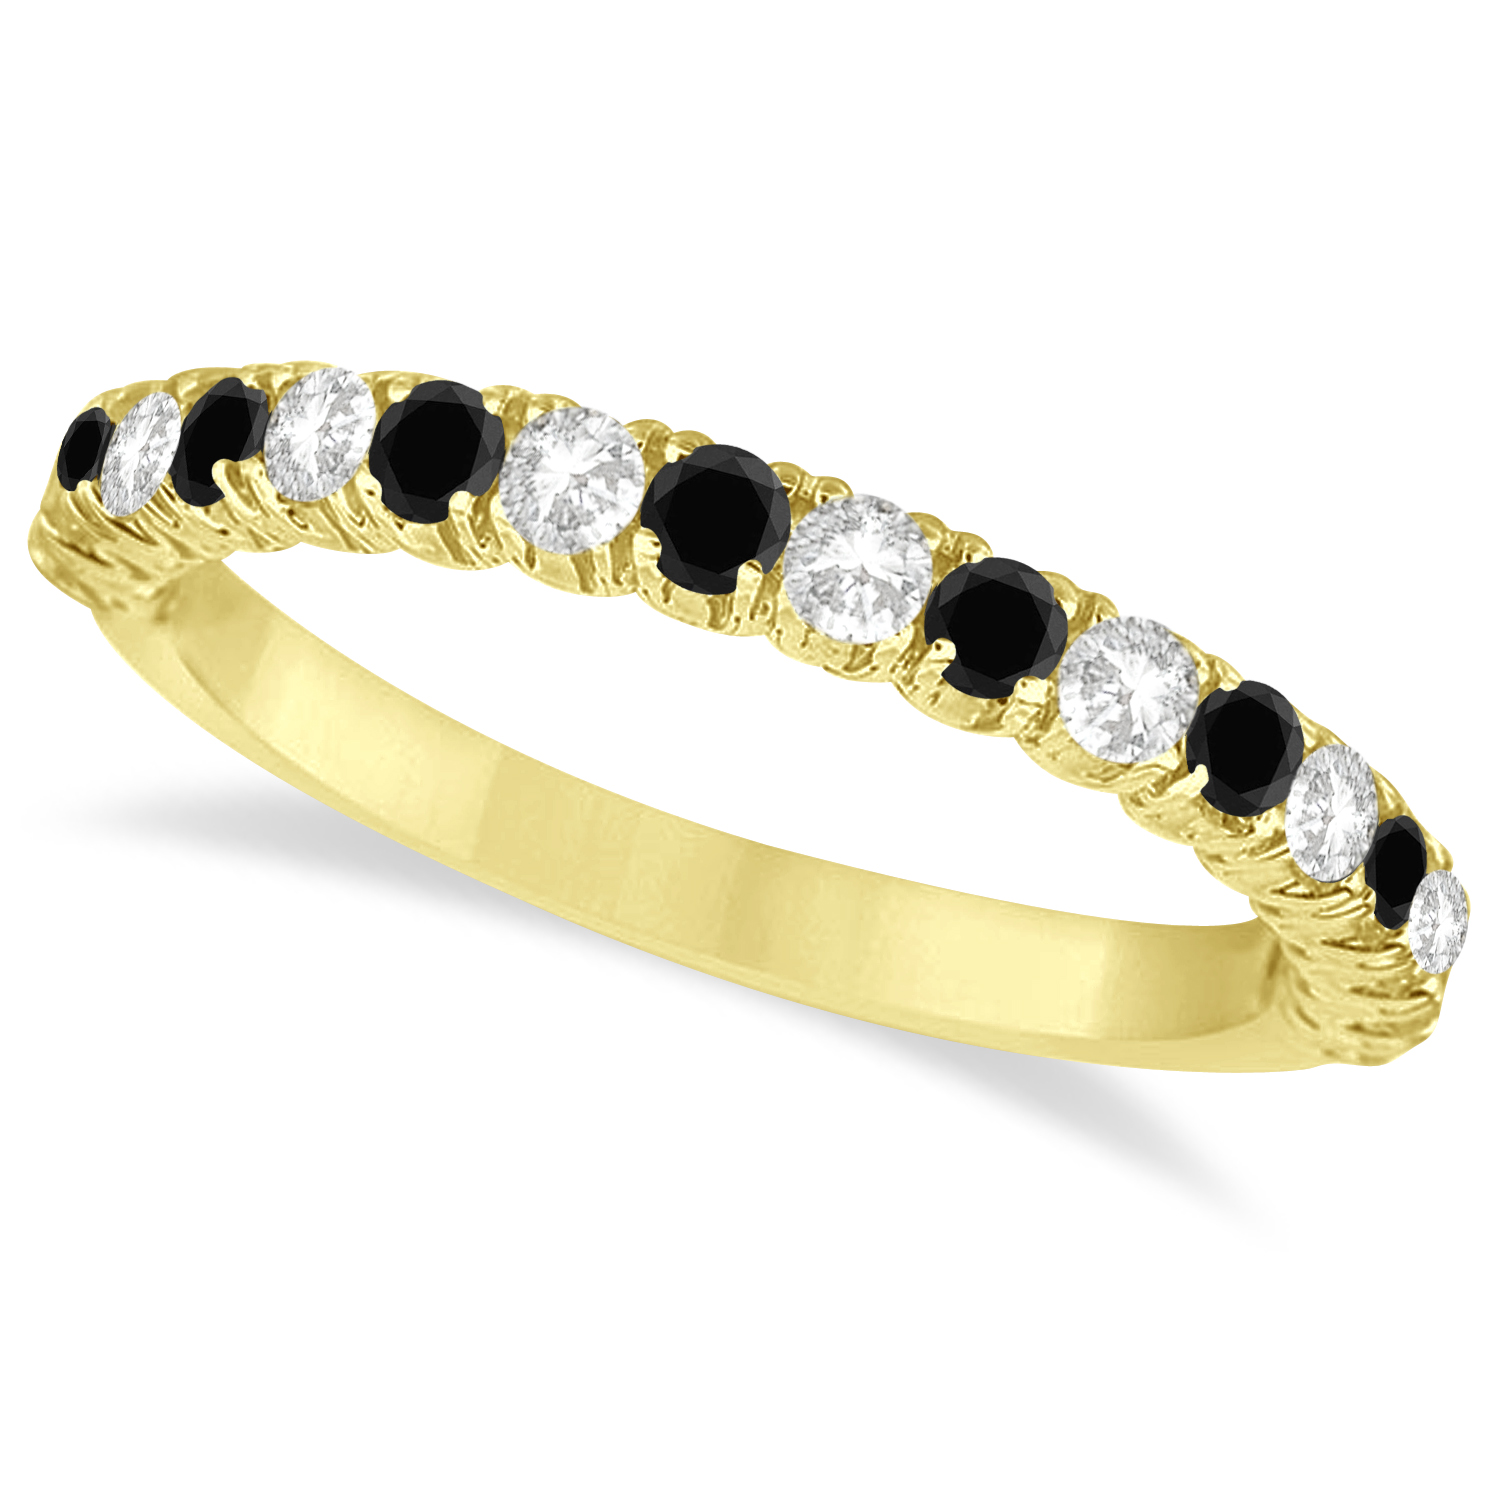 c07e7bbac60a1 Black & White Diamond Wedding Band Anniversary Ring in 14k Yellow Gold  (0.75ct)